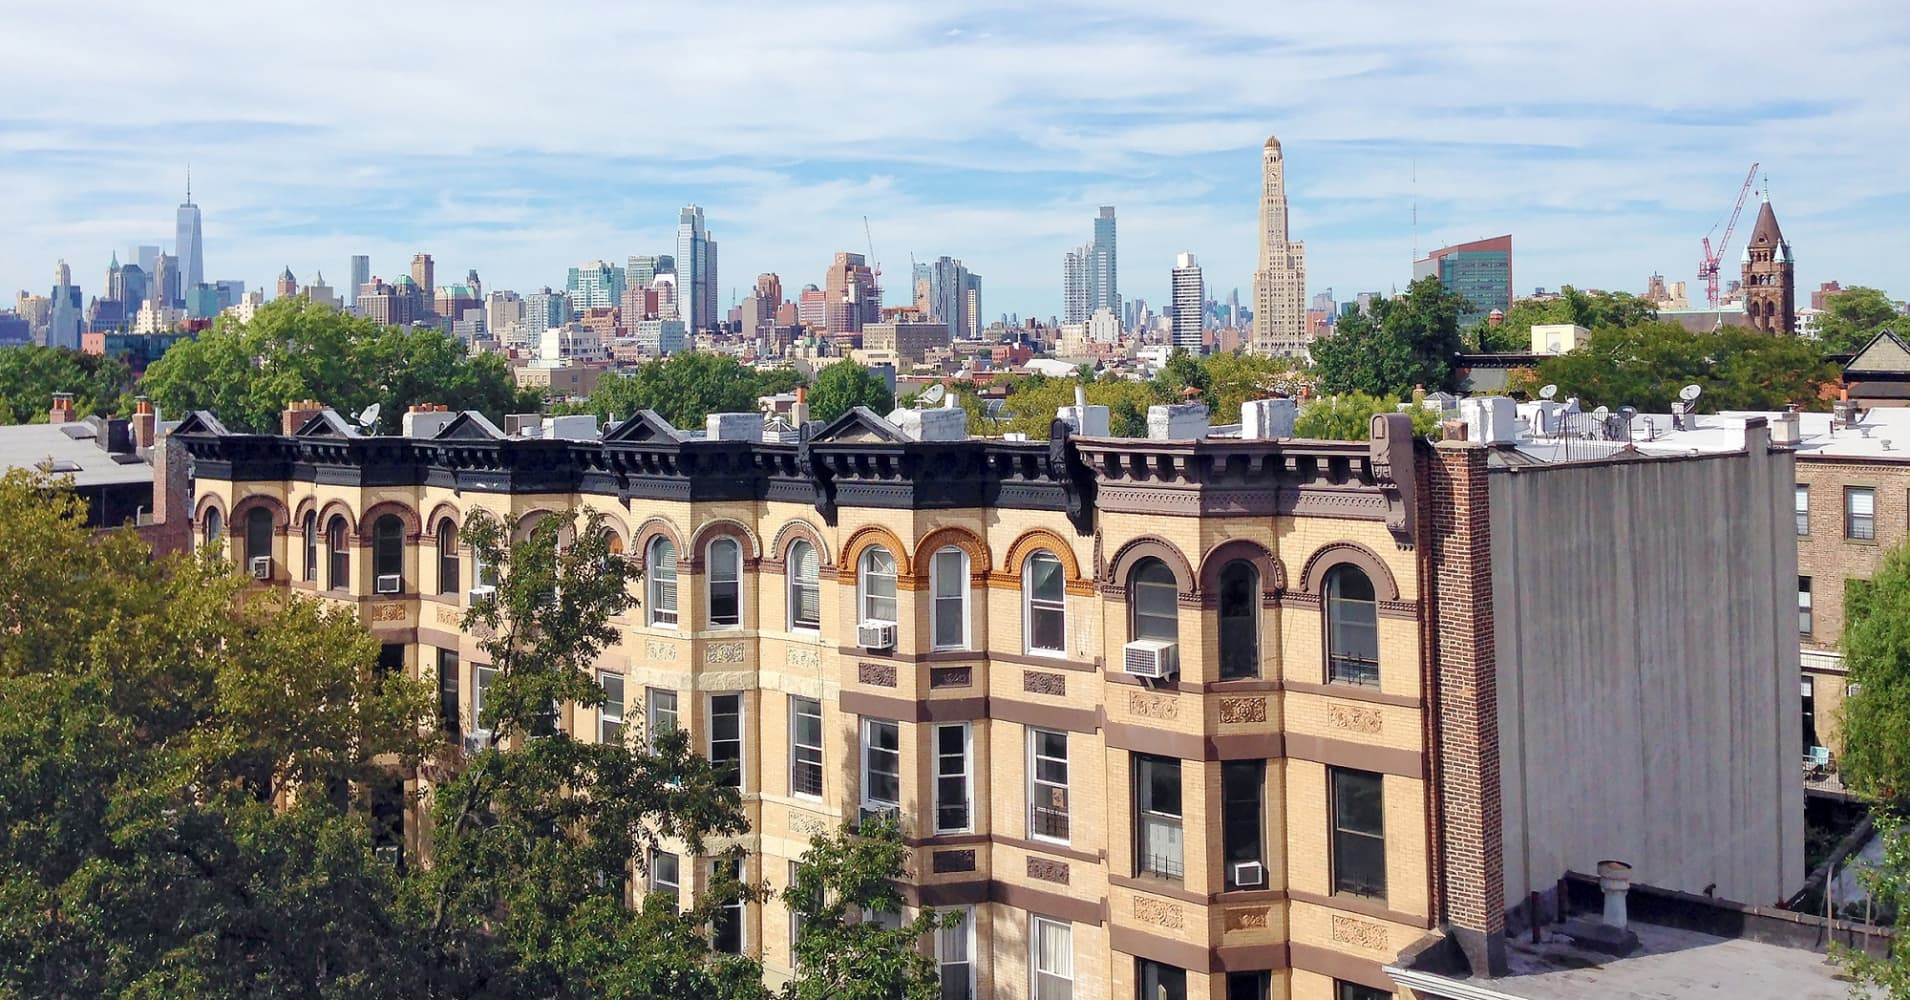 How To Find Cheap Housing On A Budget